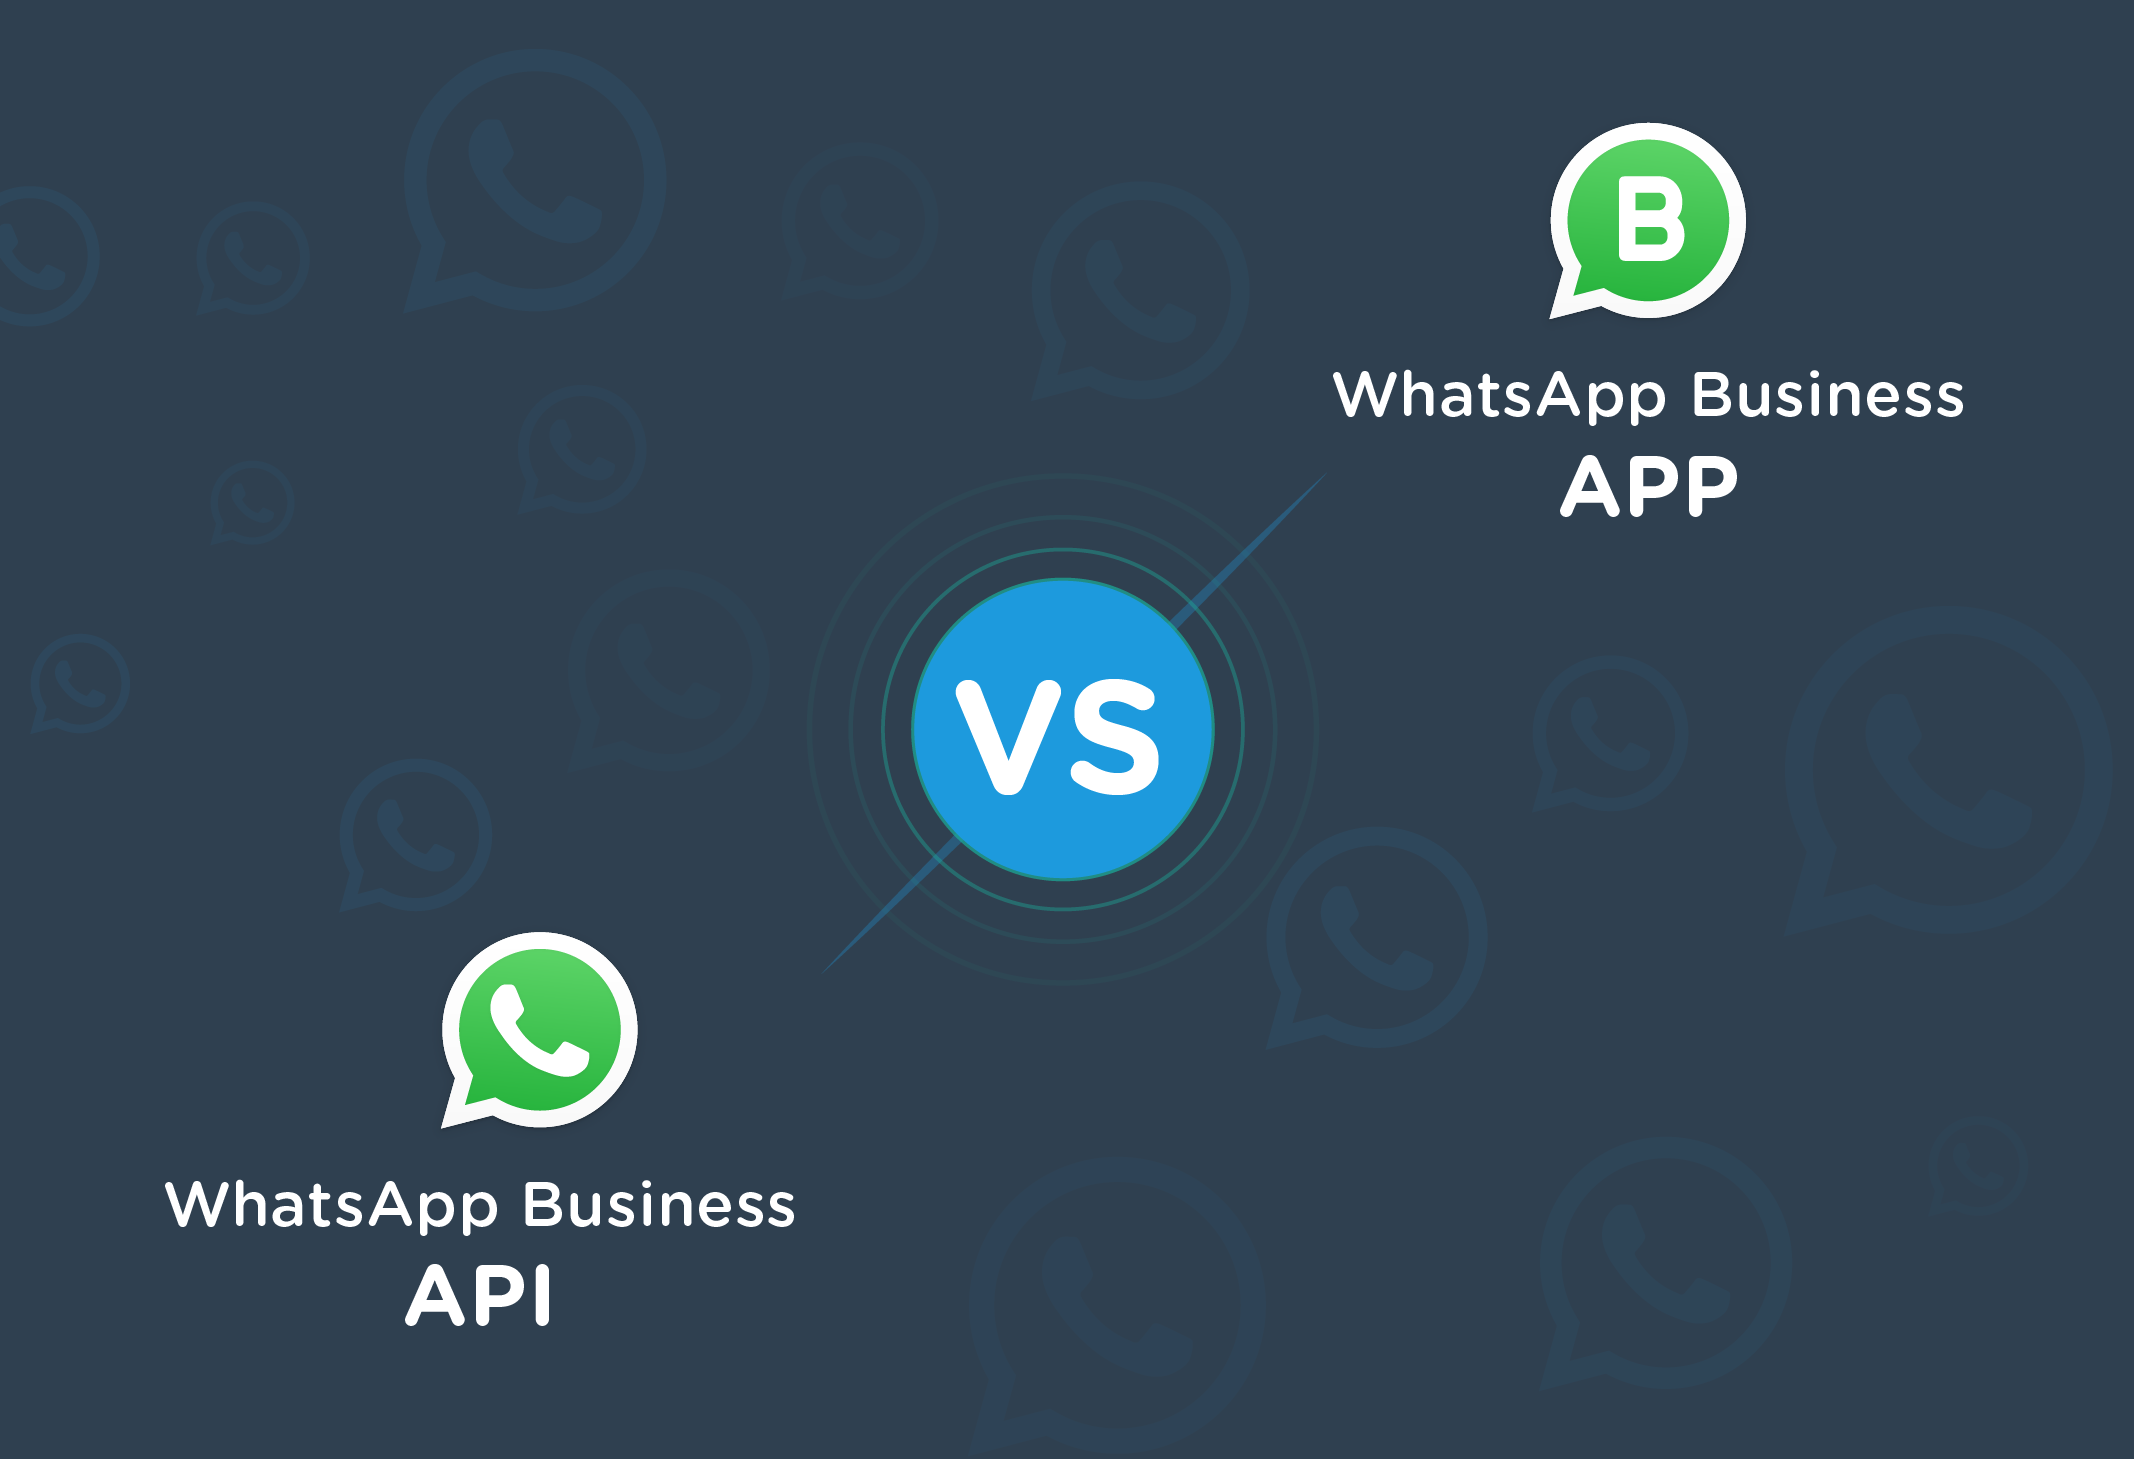 WhatsApp Business API or WhatsApp Business APP – Which is better for your organization?